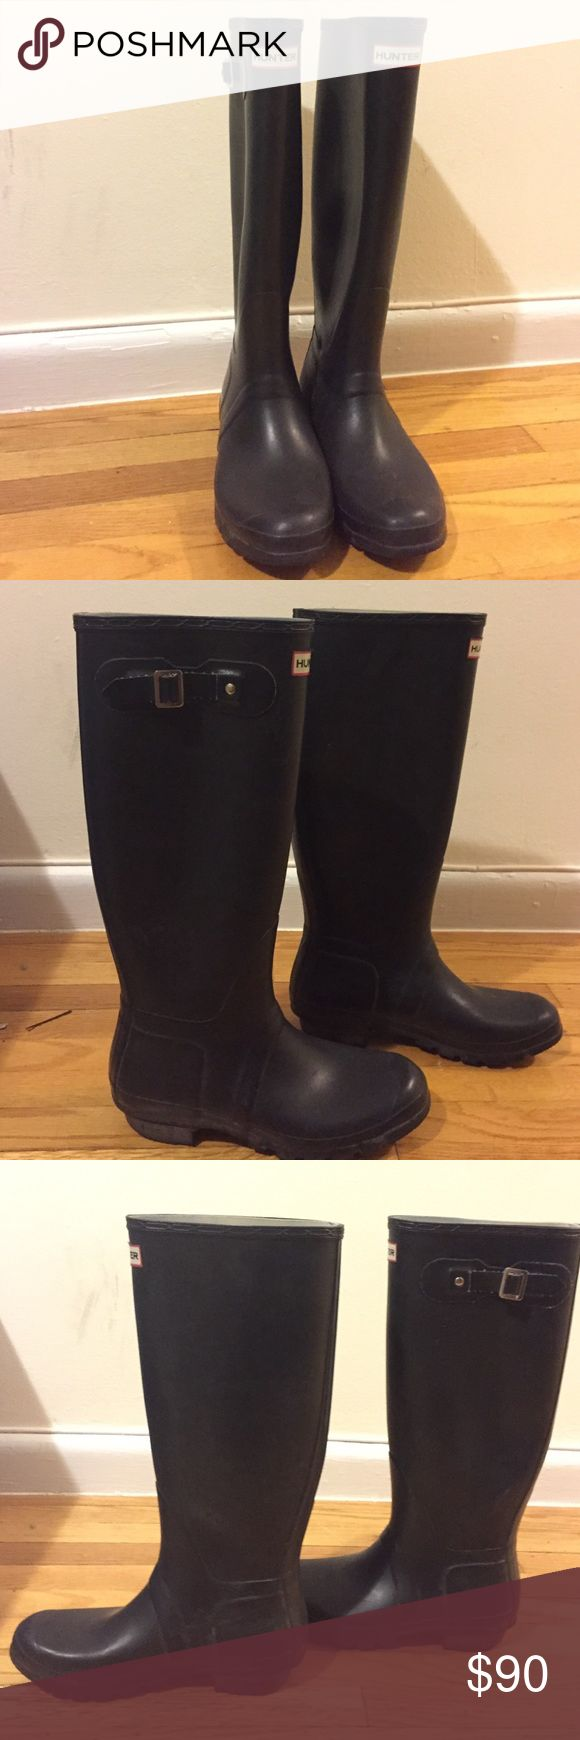 HUNTER BOOTS matte sz 9 Original hunter boot black matte in good condition. Have hunter boot socks for purchase too Hunter Boots Shoes Winter & Rain Boots